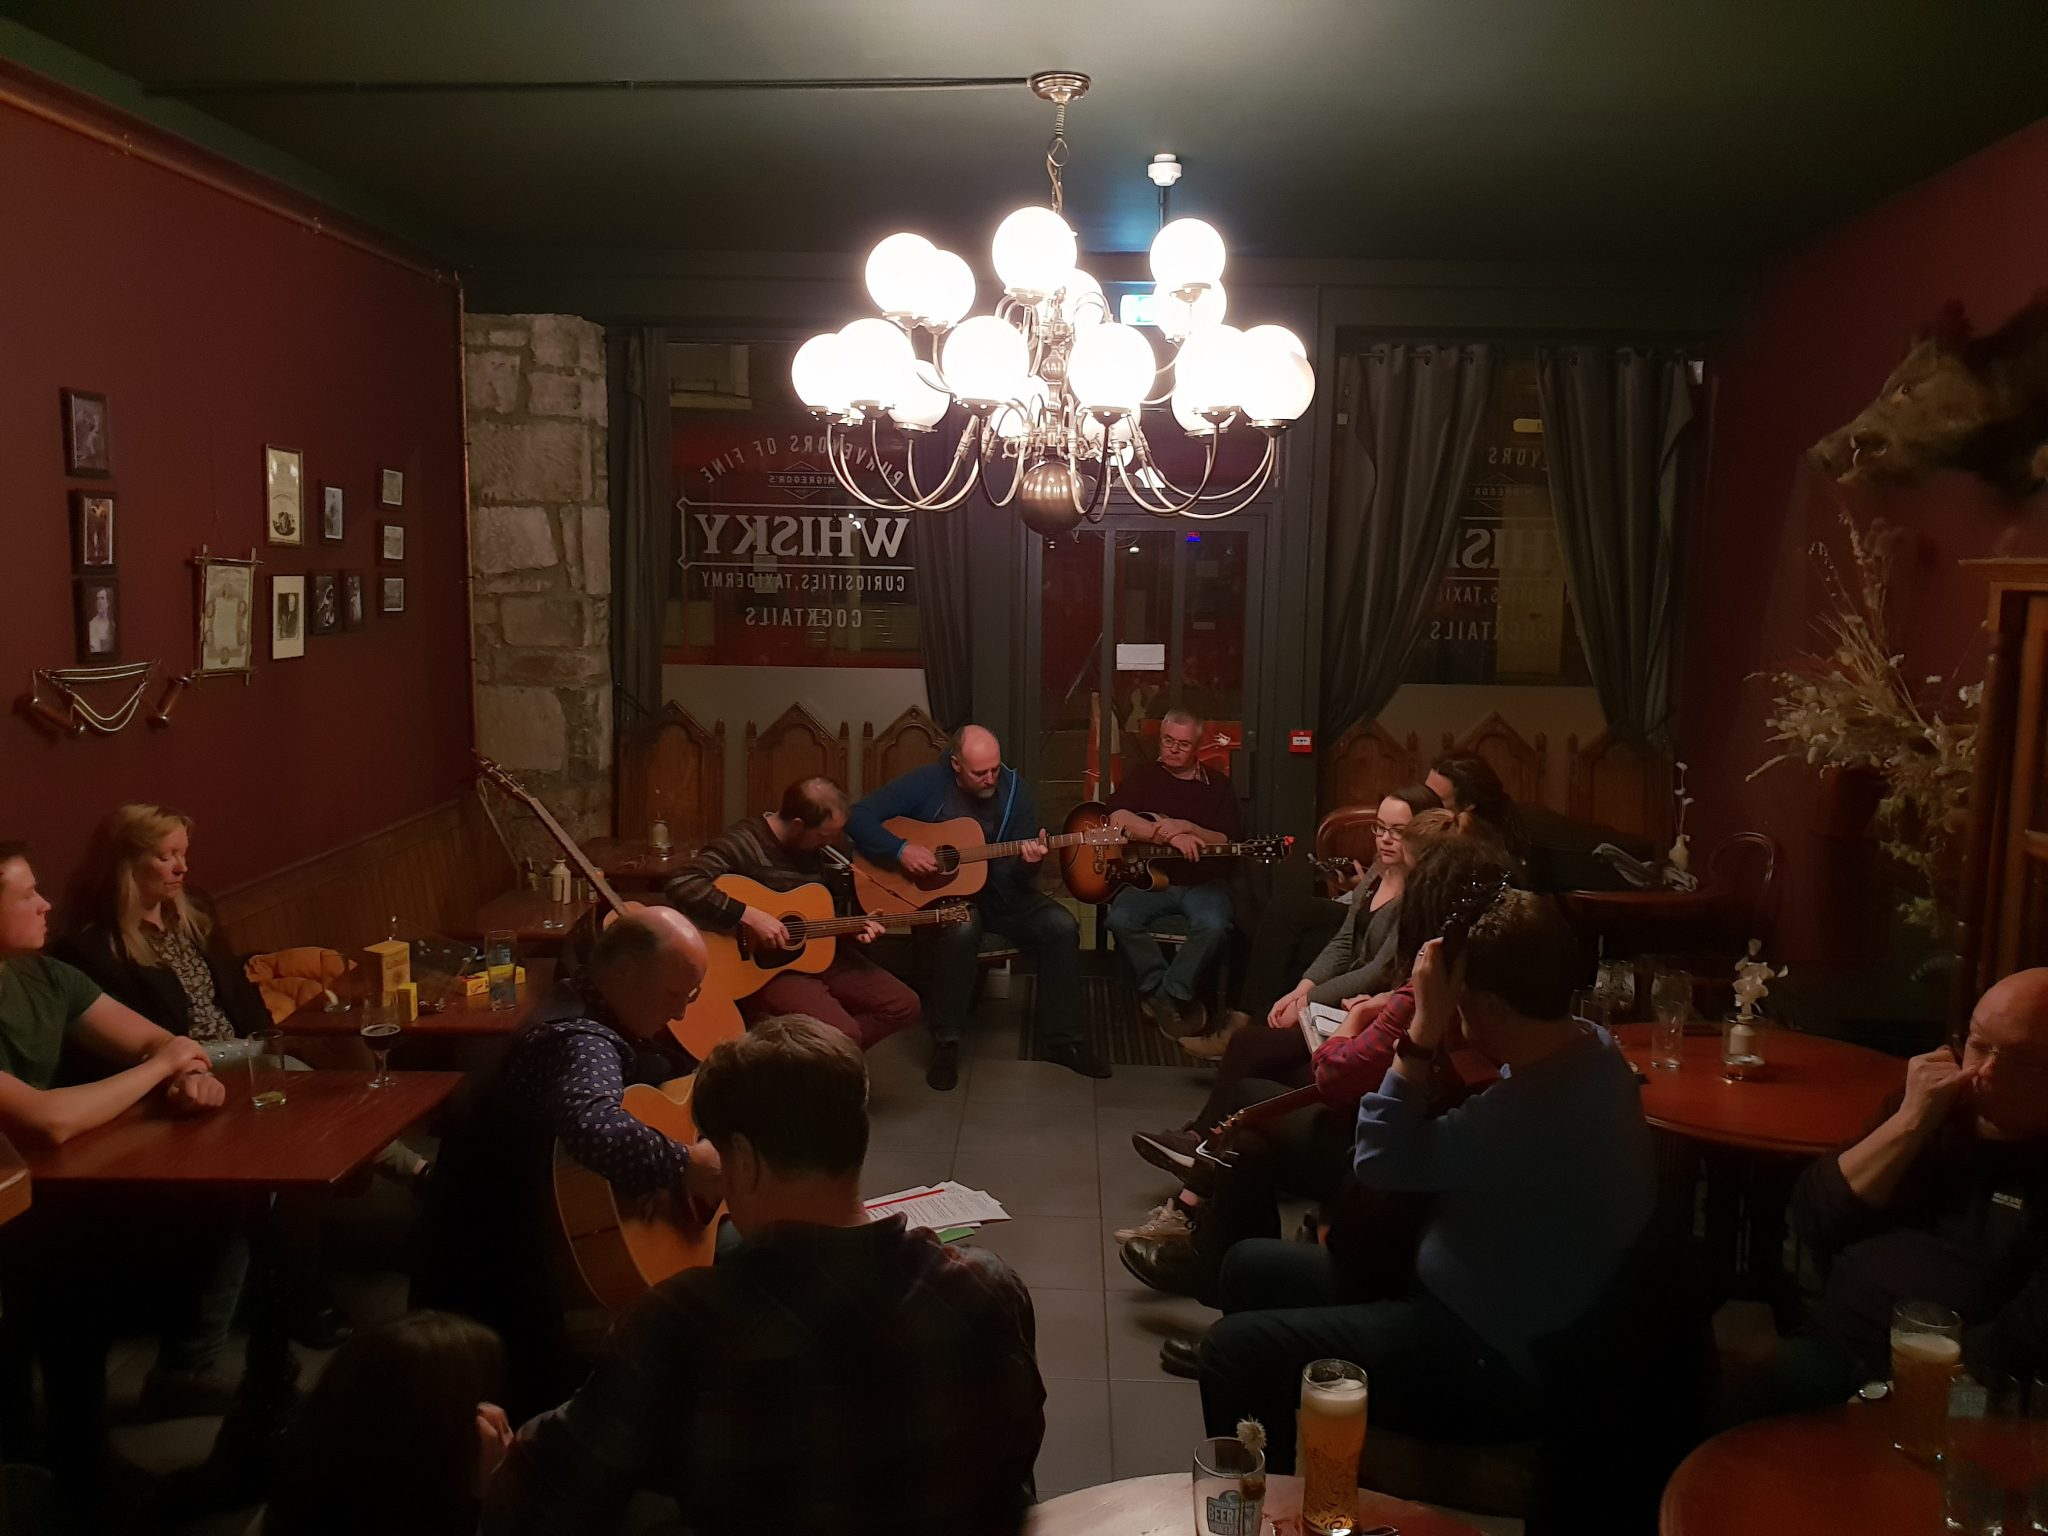 20181113 215533 - A look at the Songwriters Circle